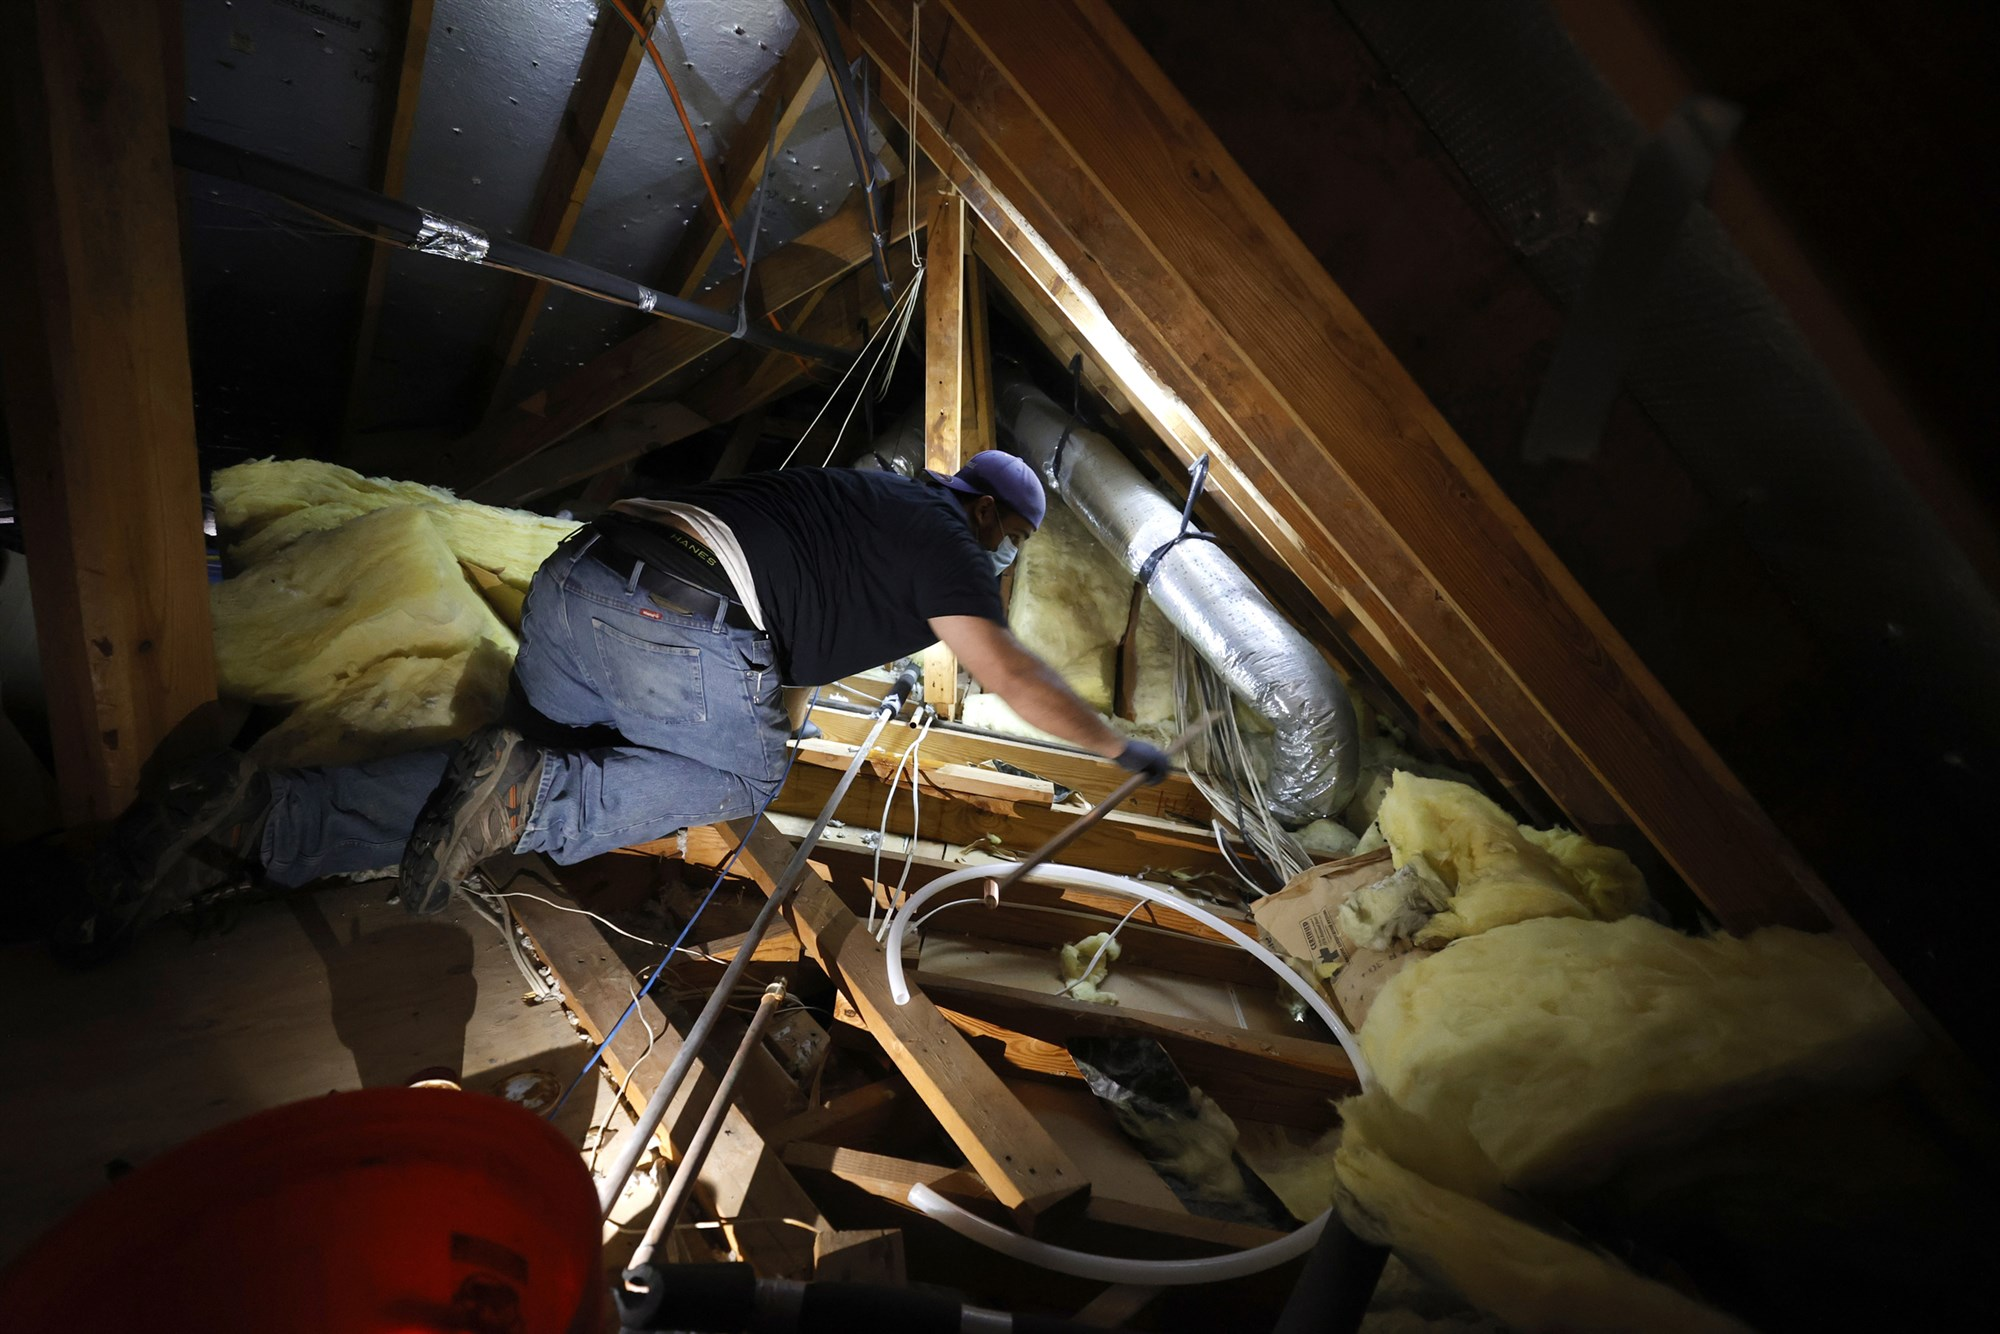 Plumbers from around the U.S. volunteer to aid a struggling Texas